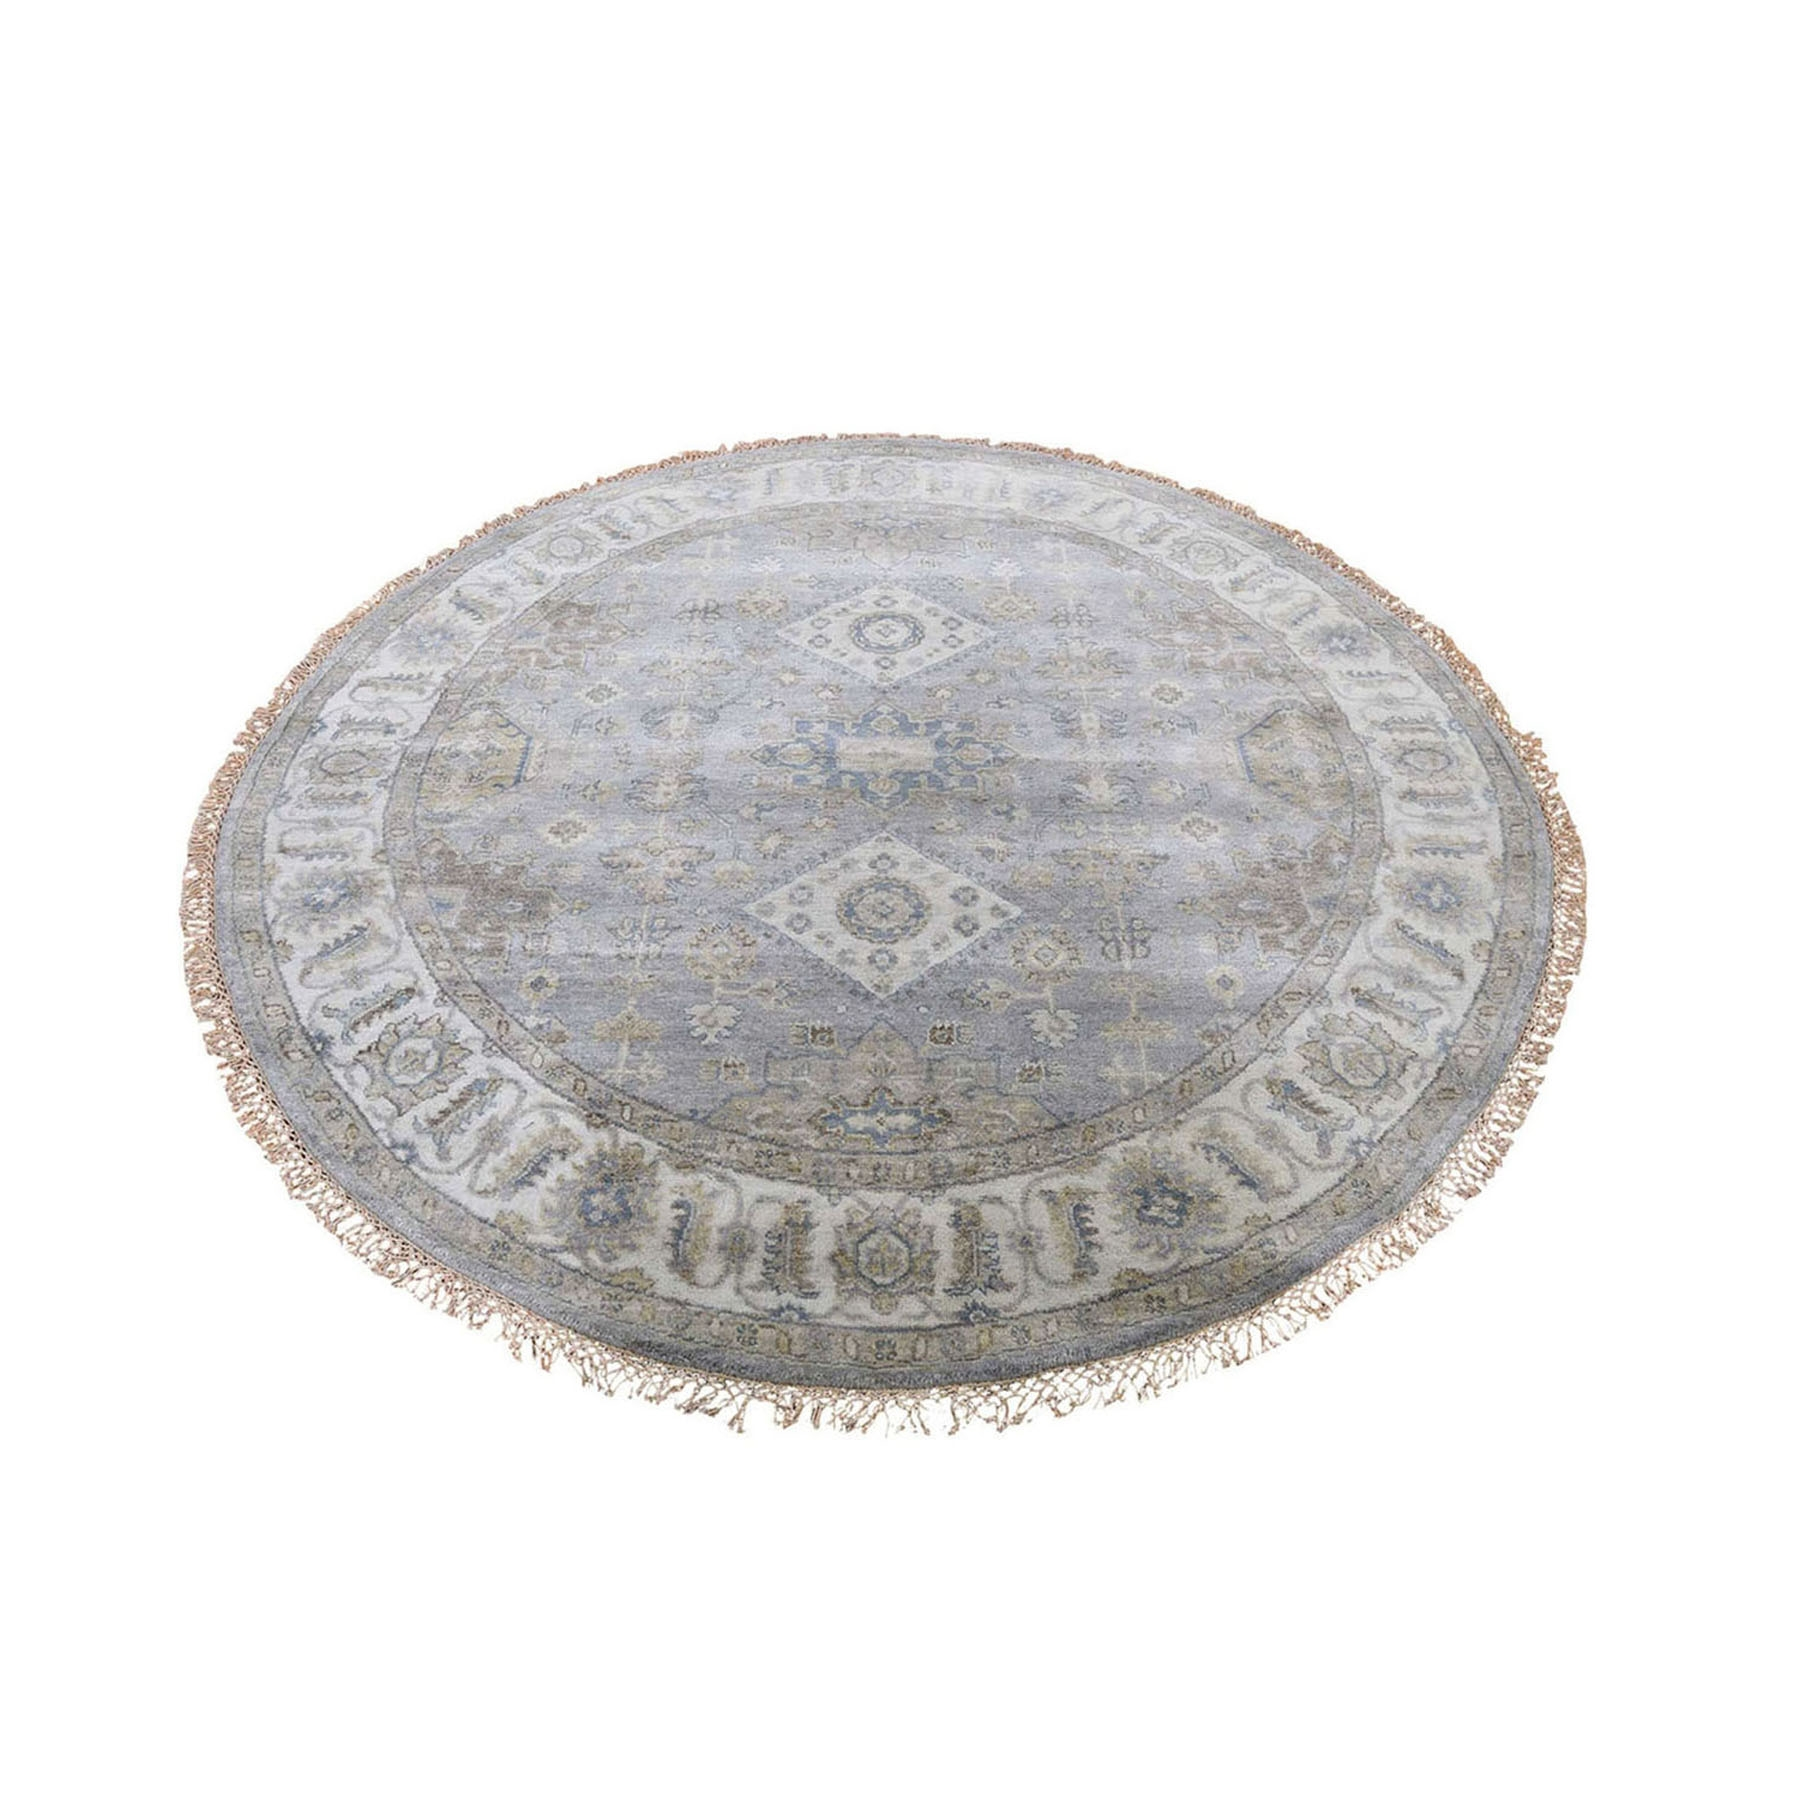 6'X6' Round Gray Karajeh Design Pure Wool Hand Knotted Oriental Rug moad888a